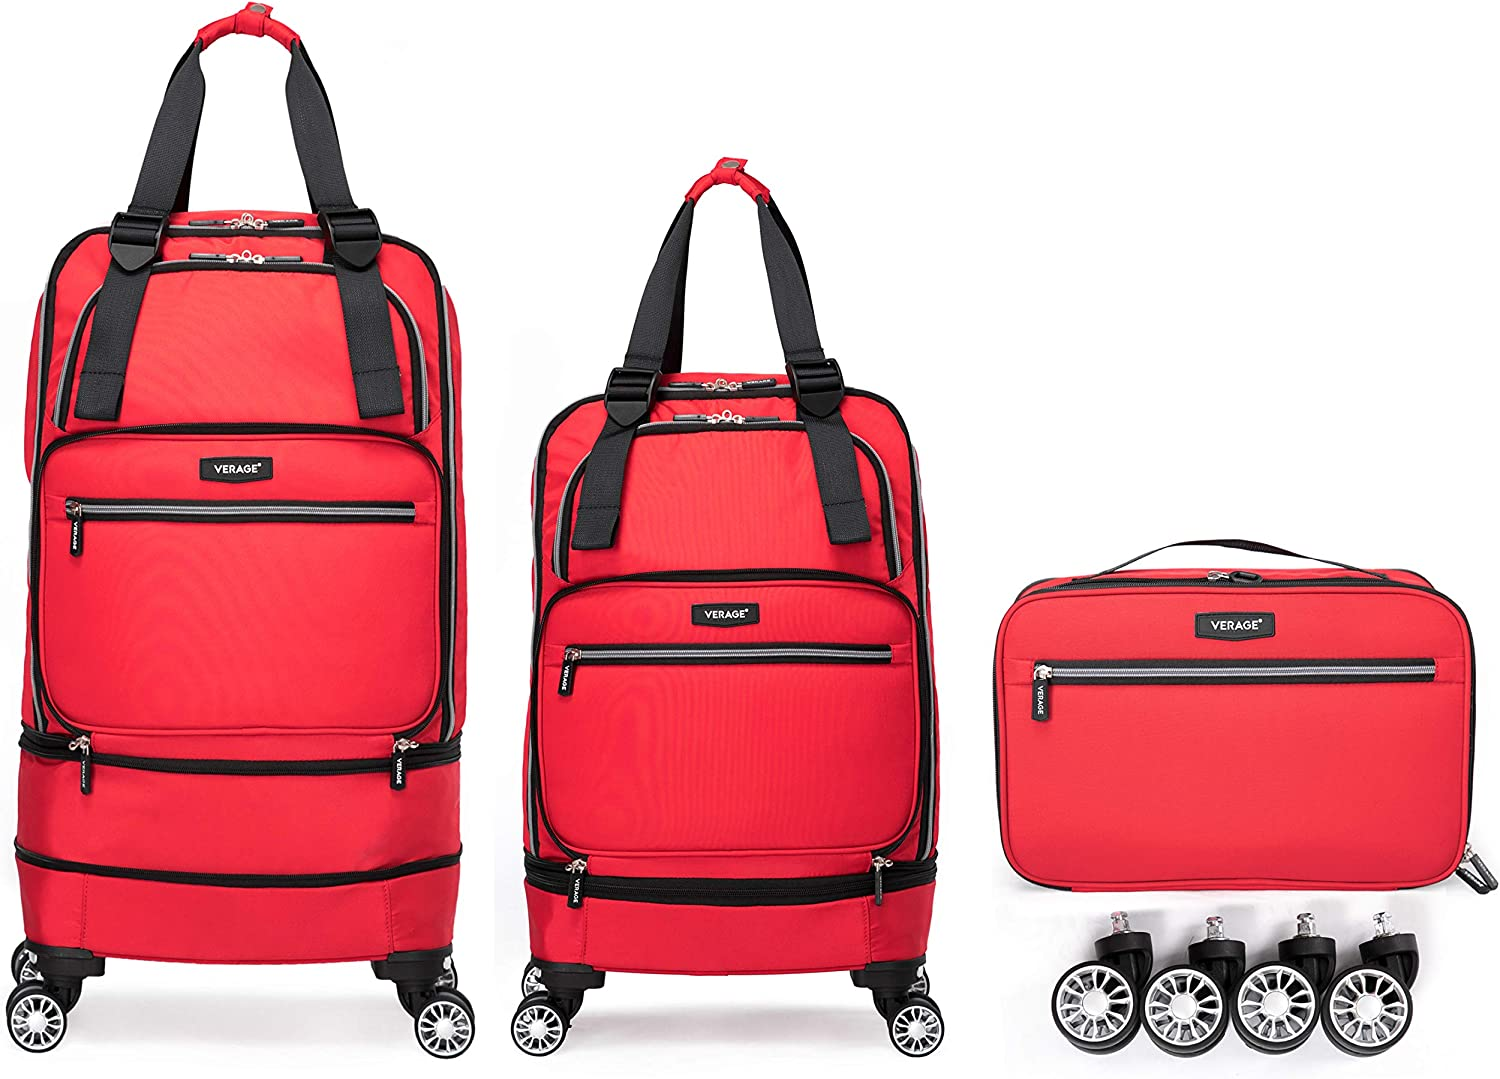 Foldable Luggage Bag with Spinner wheels,Expandable Collapsible Rolling Duffel Bag,Large Suitcase for Travel,Checked Luggage 24/28inches (2 in 1),Red